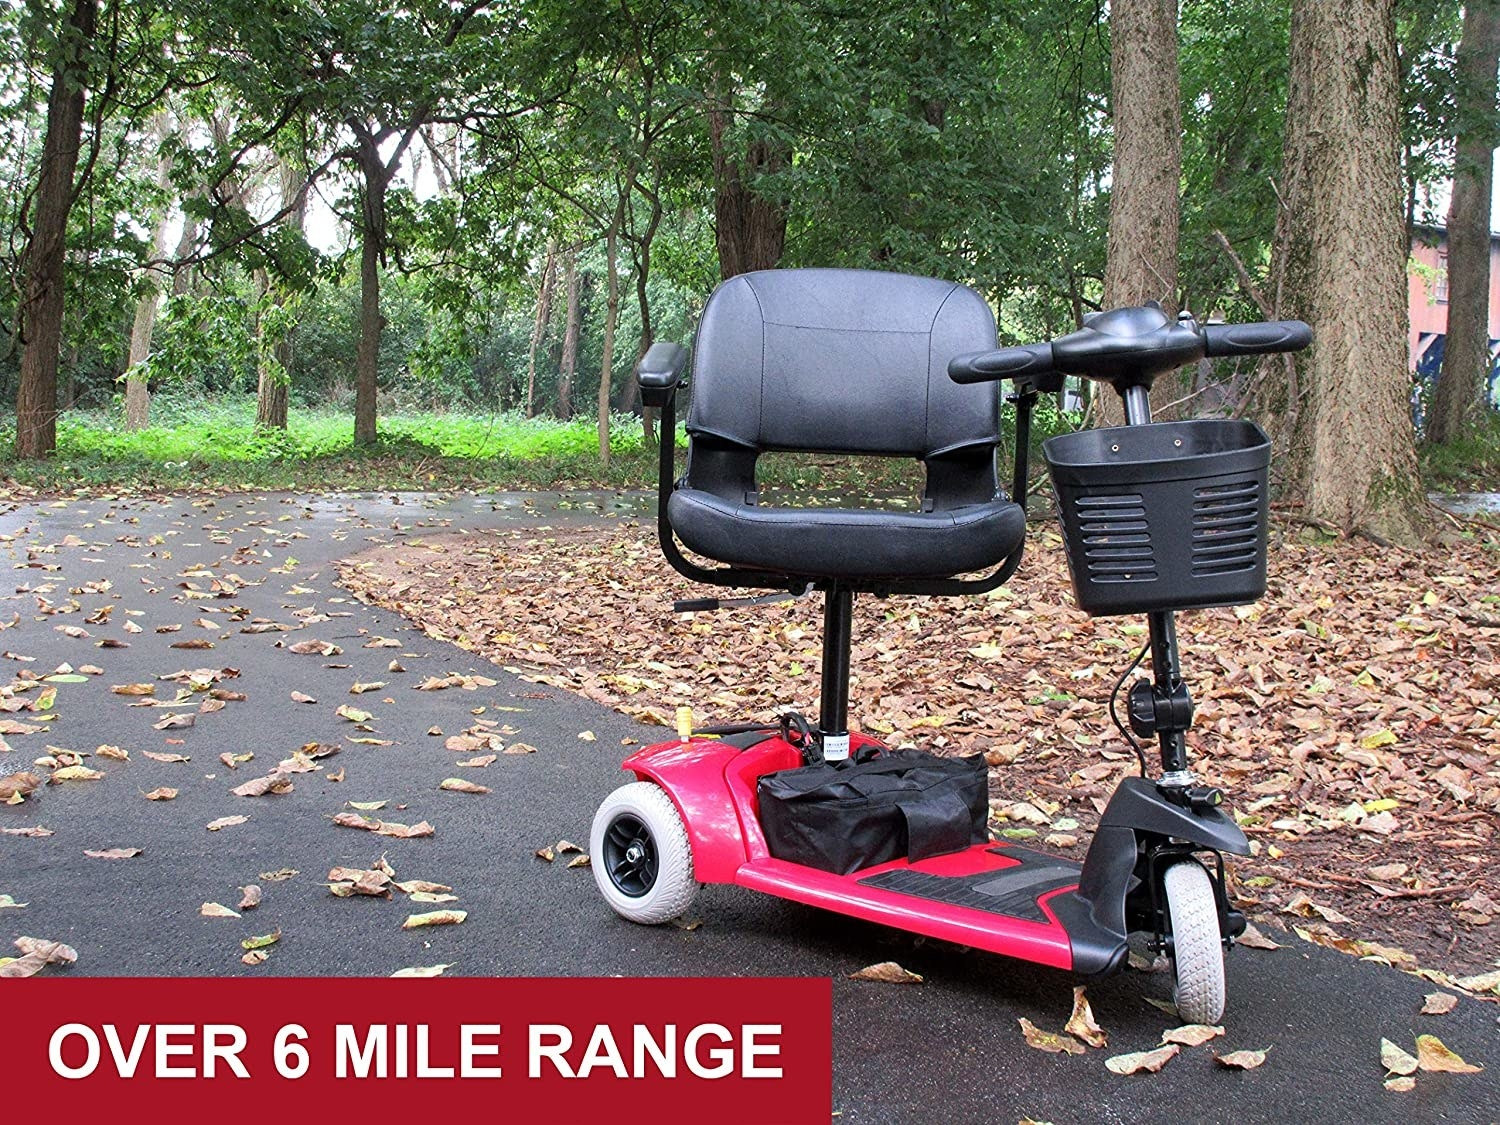 a three wheeled mobility electric scooter with a cushioned seat and basket at the front parked on a sidewalk in a park full of leave